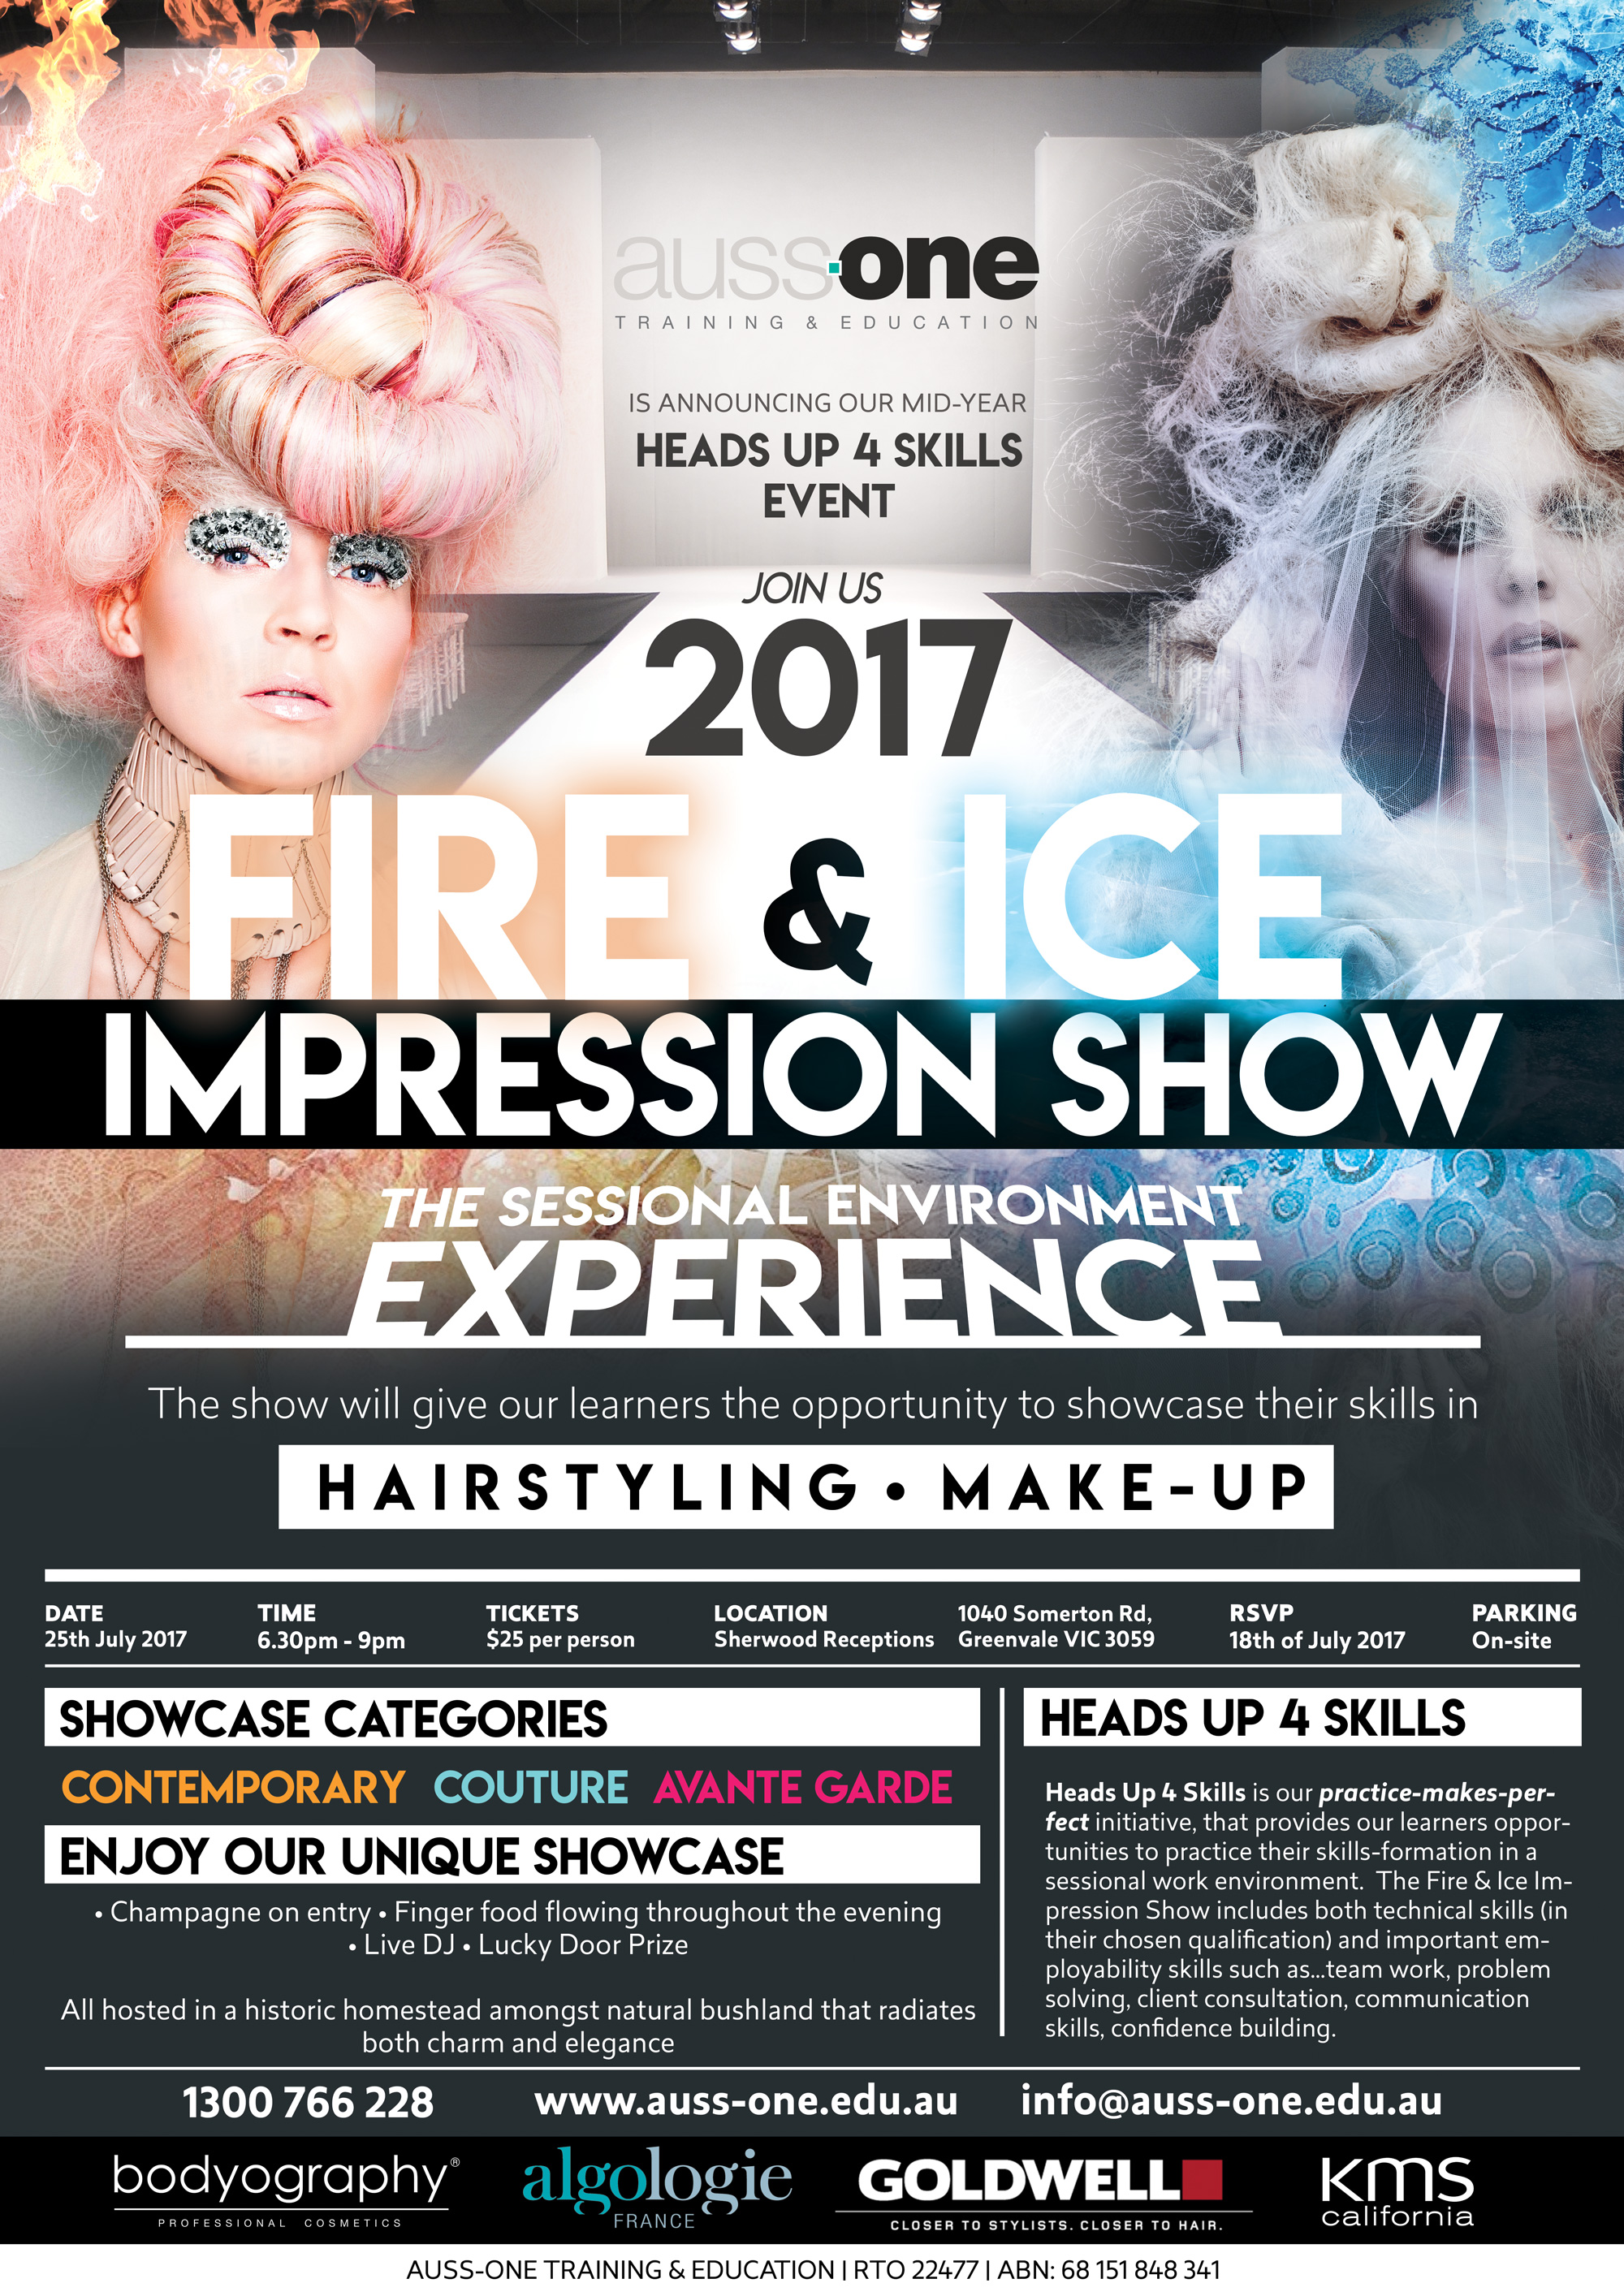 2017 Fire & Ice Impression Show Poster